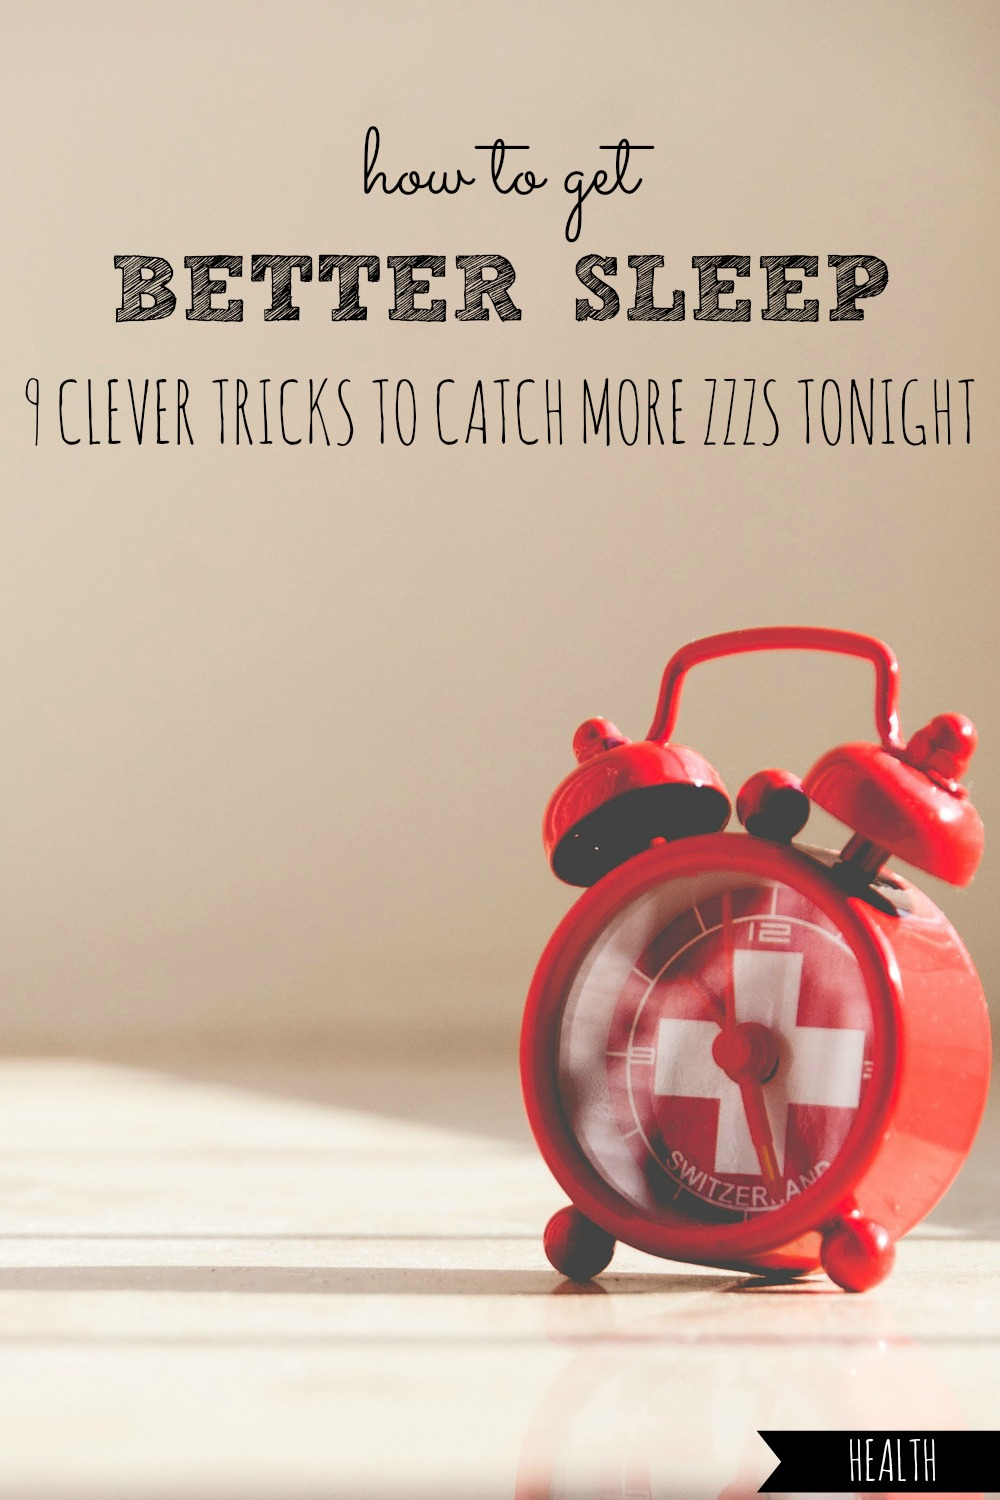 Ever have trouble falling and staying asleep? Here are 9 clever tricks that you can try today, to enjoy longer and better sleep TONIGHT! #better #sleep #sleepy #sleeping #tired #night #nights #nighttime #nap # naps #naptime #napping #good #rest #resting